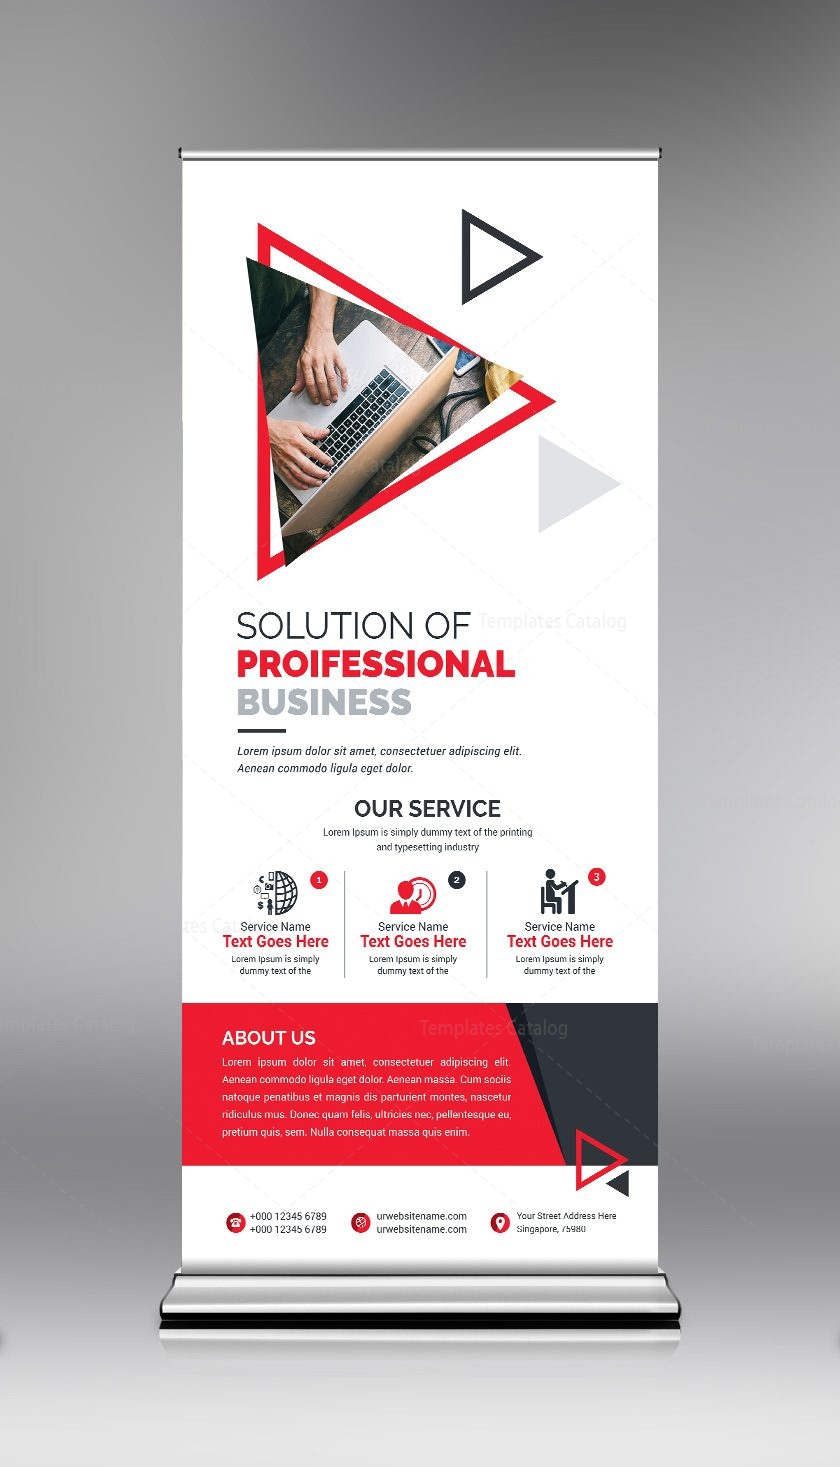 Roll Up Roll Up Read The All New Little Black Dress: Roll Up Banner Template With Clean Design 000684